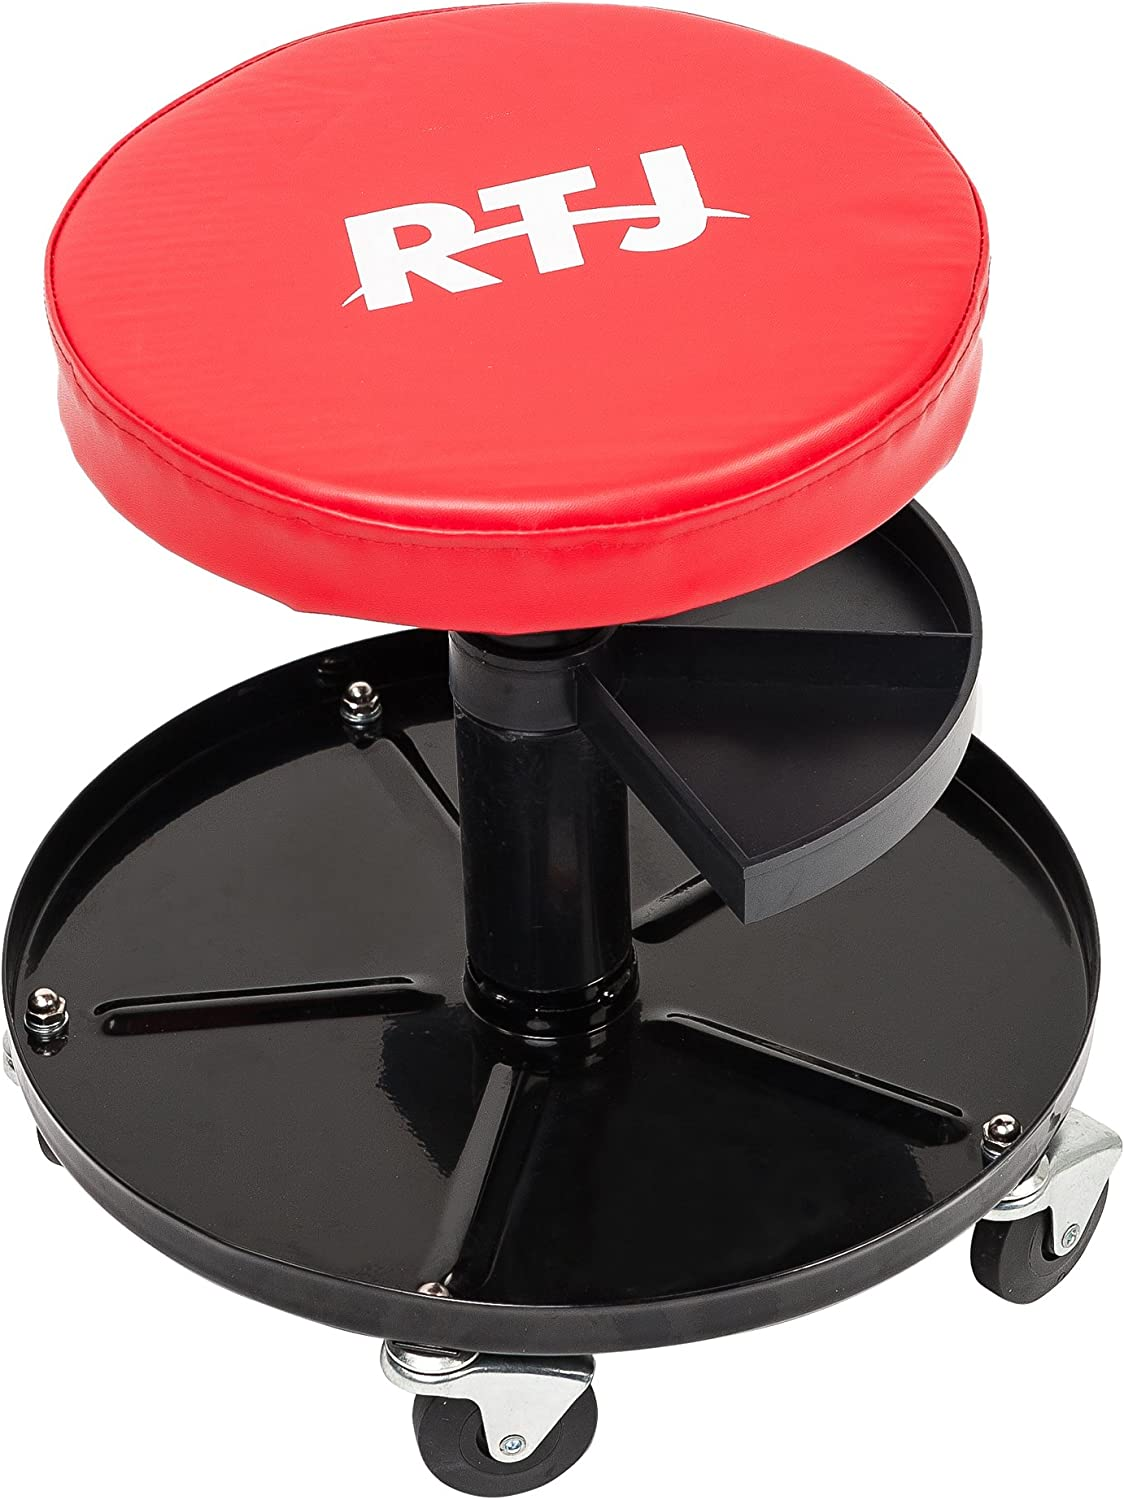 Red and Black RTJ 300 lbs Capacity Foldable Mechanic Roller Seat C-Frame Rolling Stool